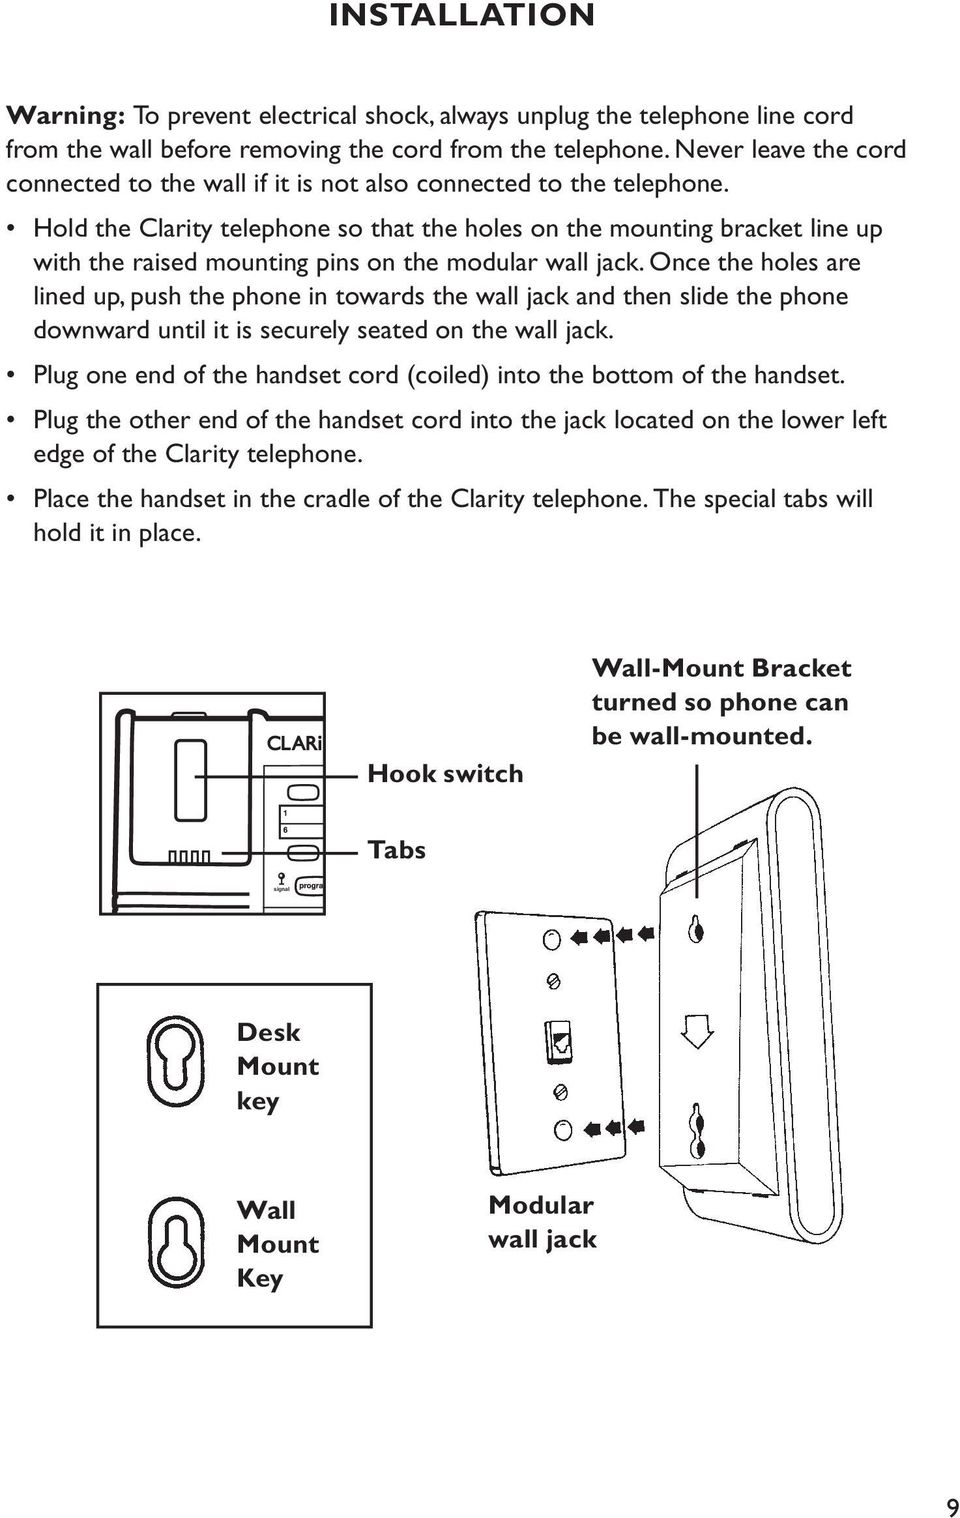 Hold the Clarity telephone so that the holes on the mounting bracket line up with the raised mounting pins on the modular wall jack.